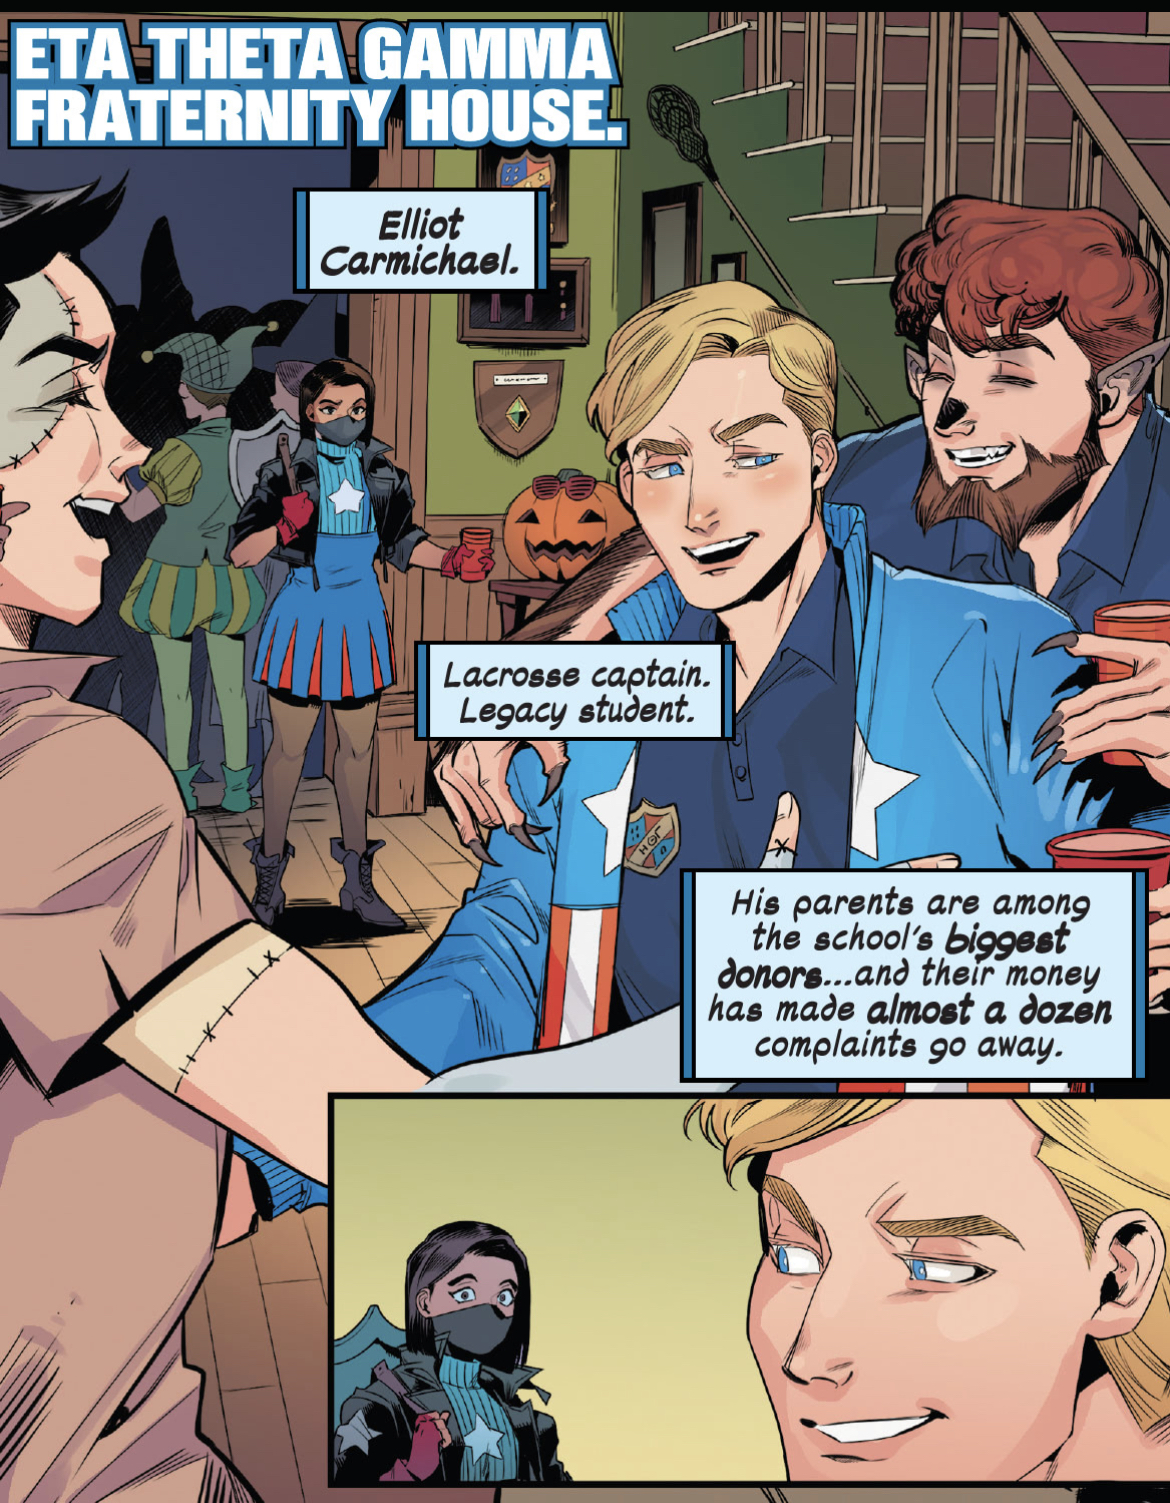 Captain America fights against sexual assault